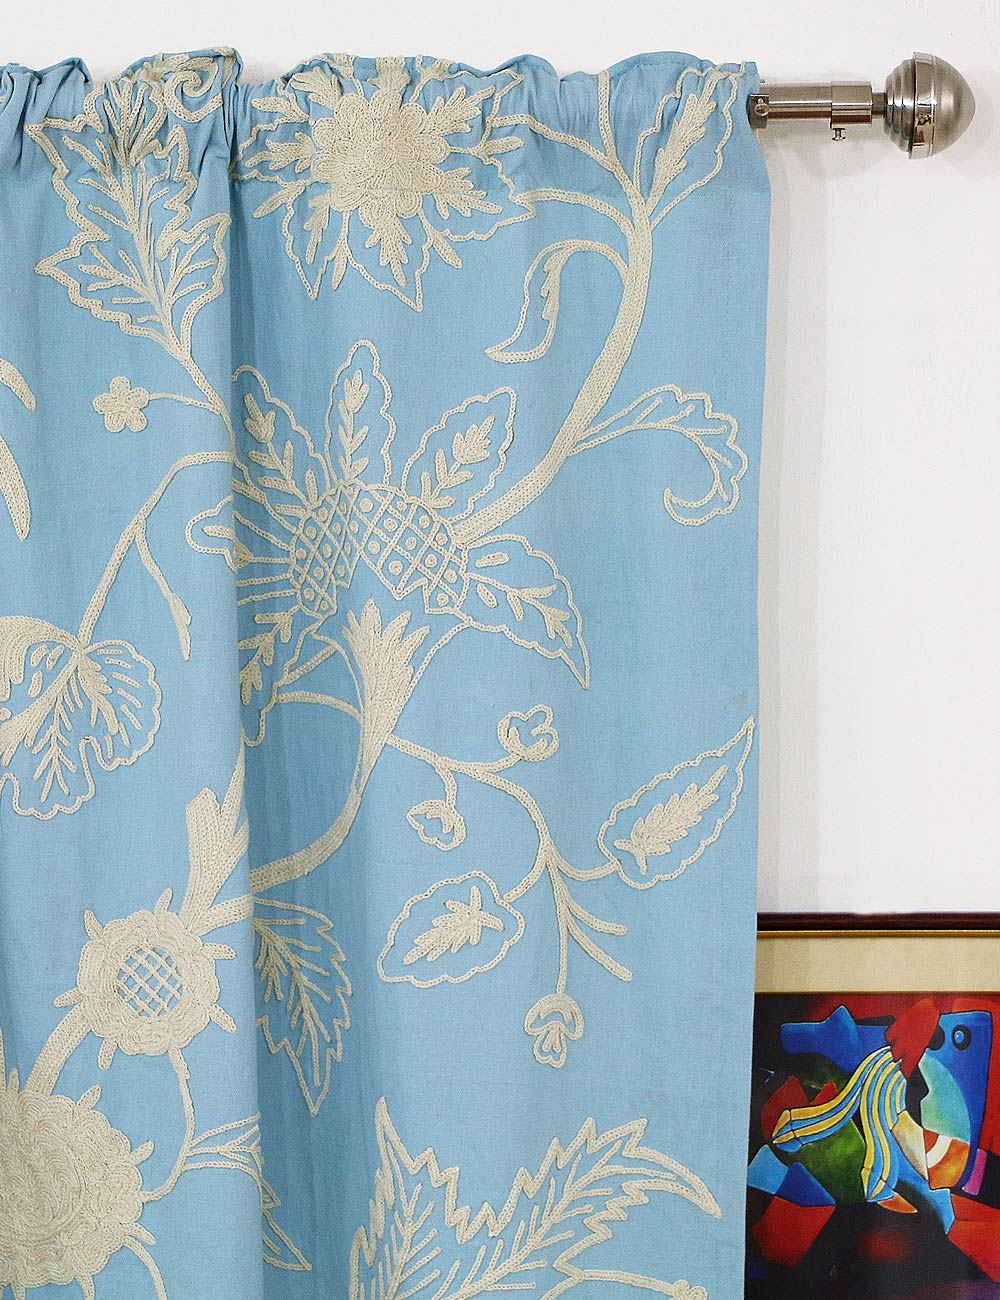 Chelsea Crewel Curtain Panels And Drapes Hand Embroidered